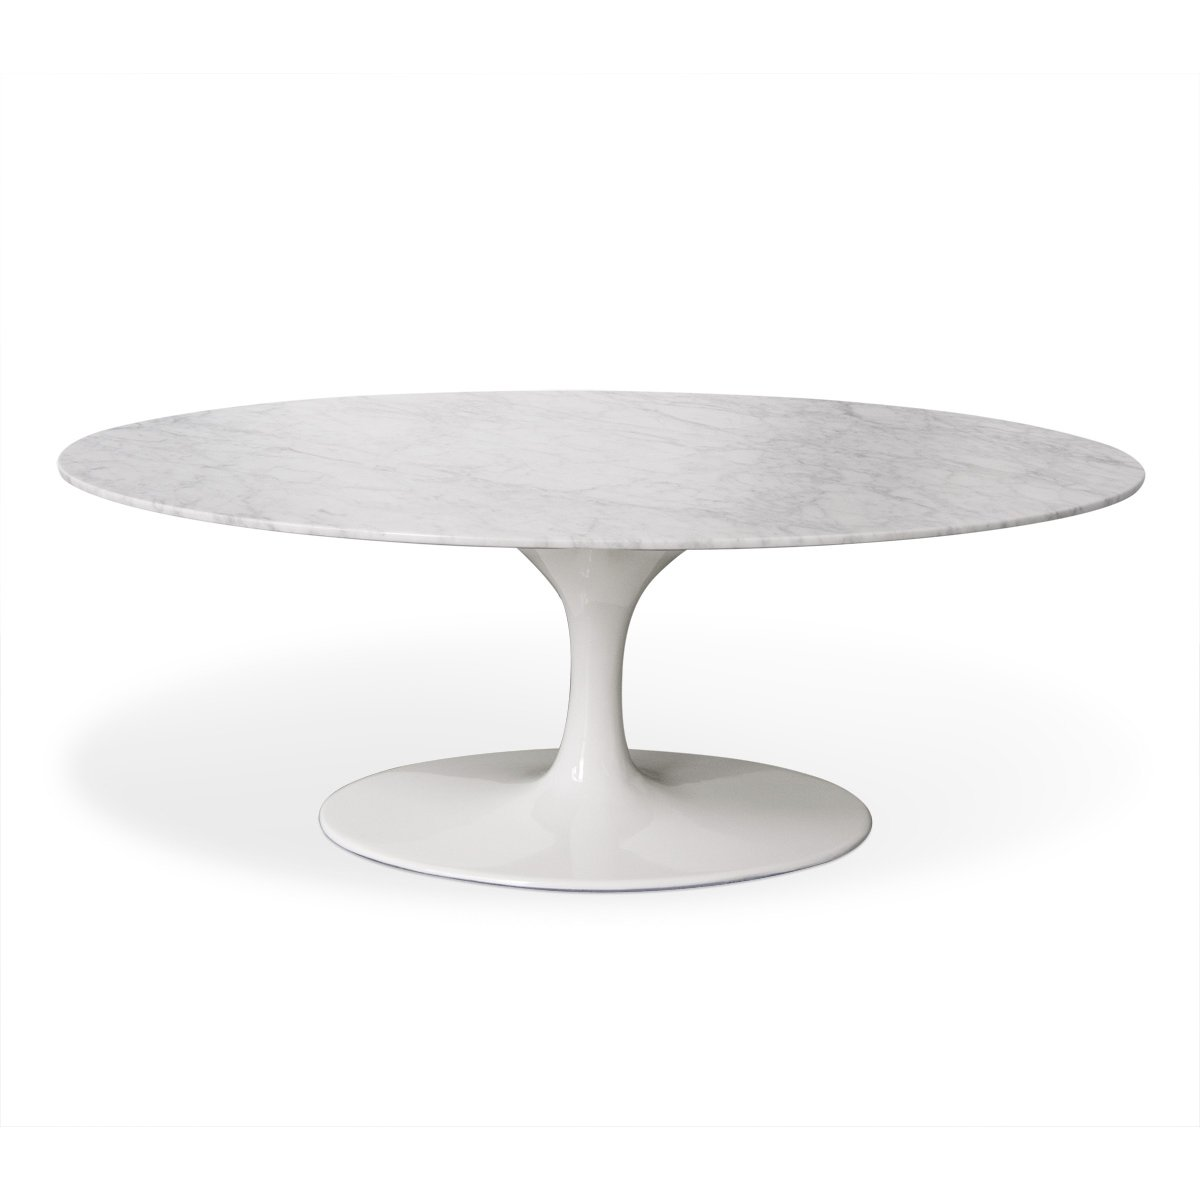 42 Oval Marble Tulip Coffee Table